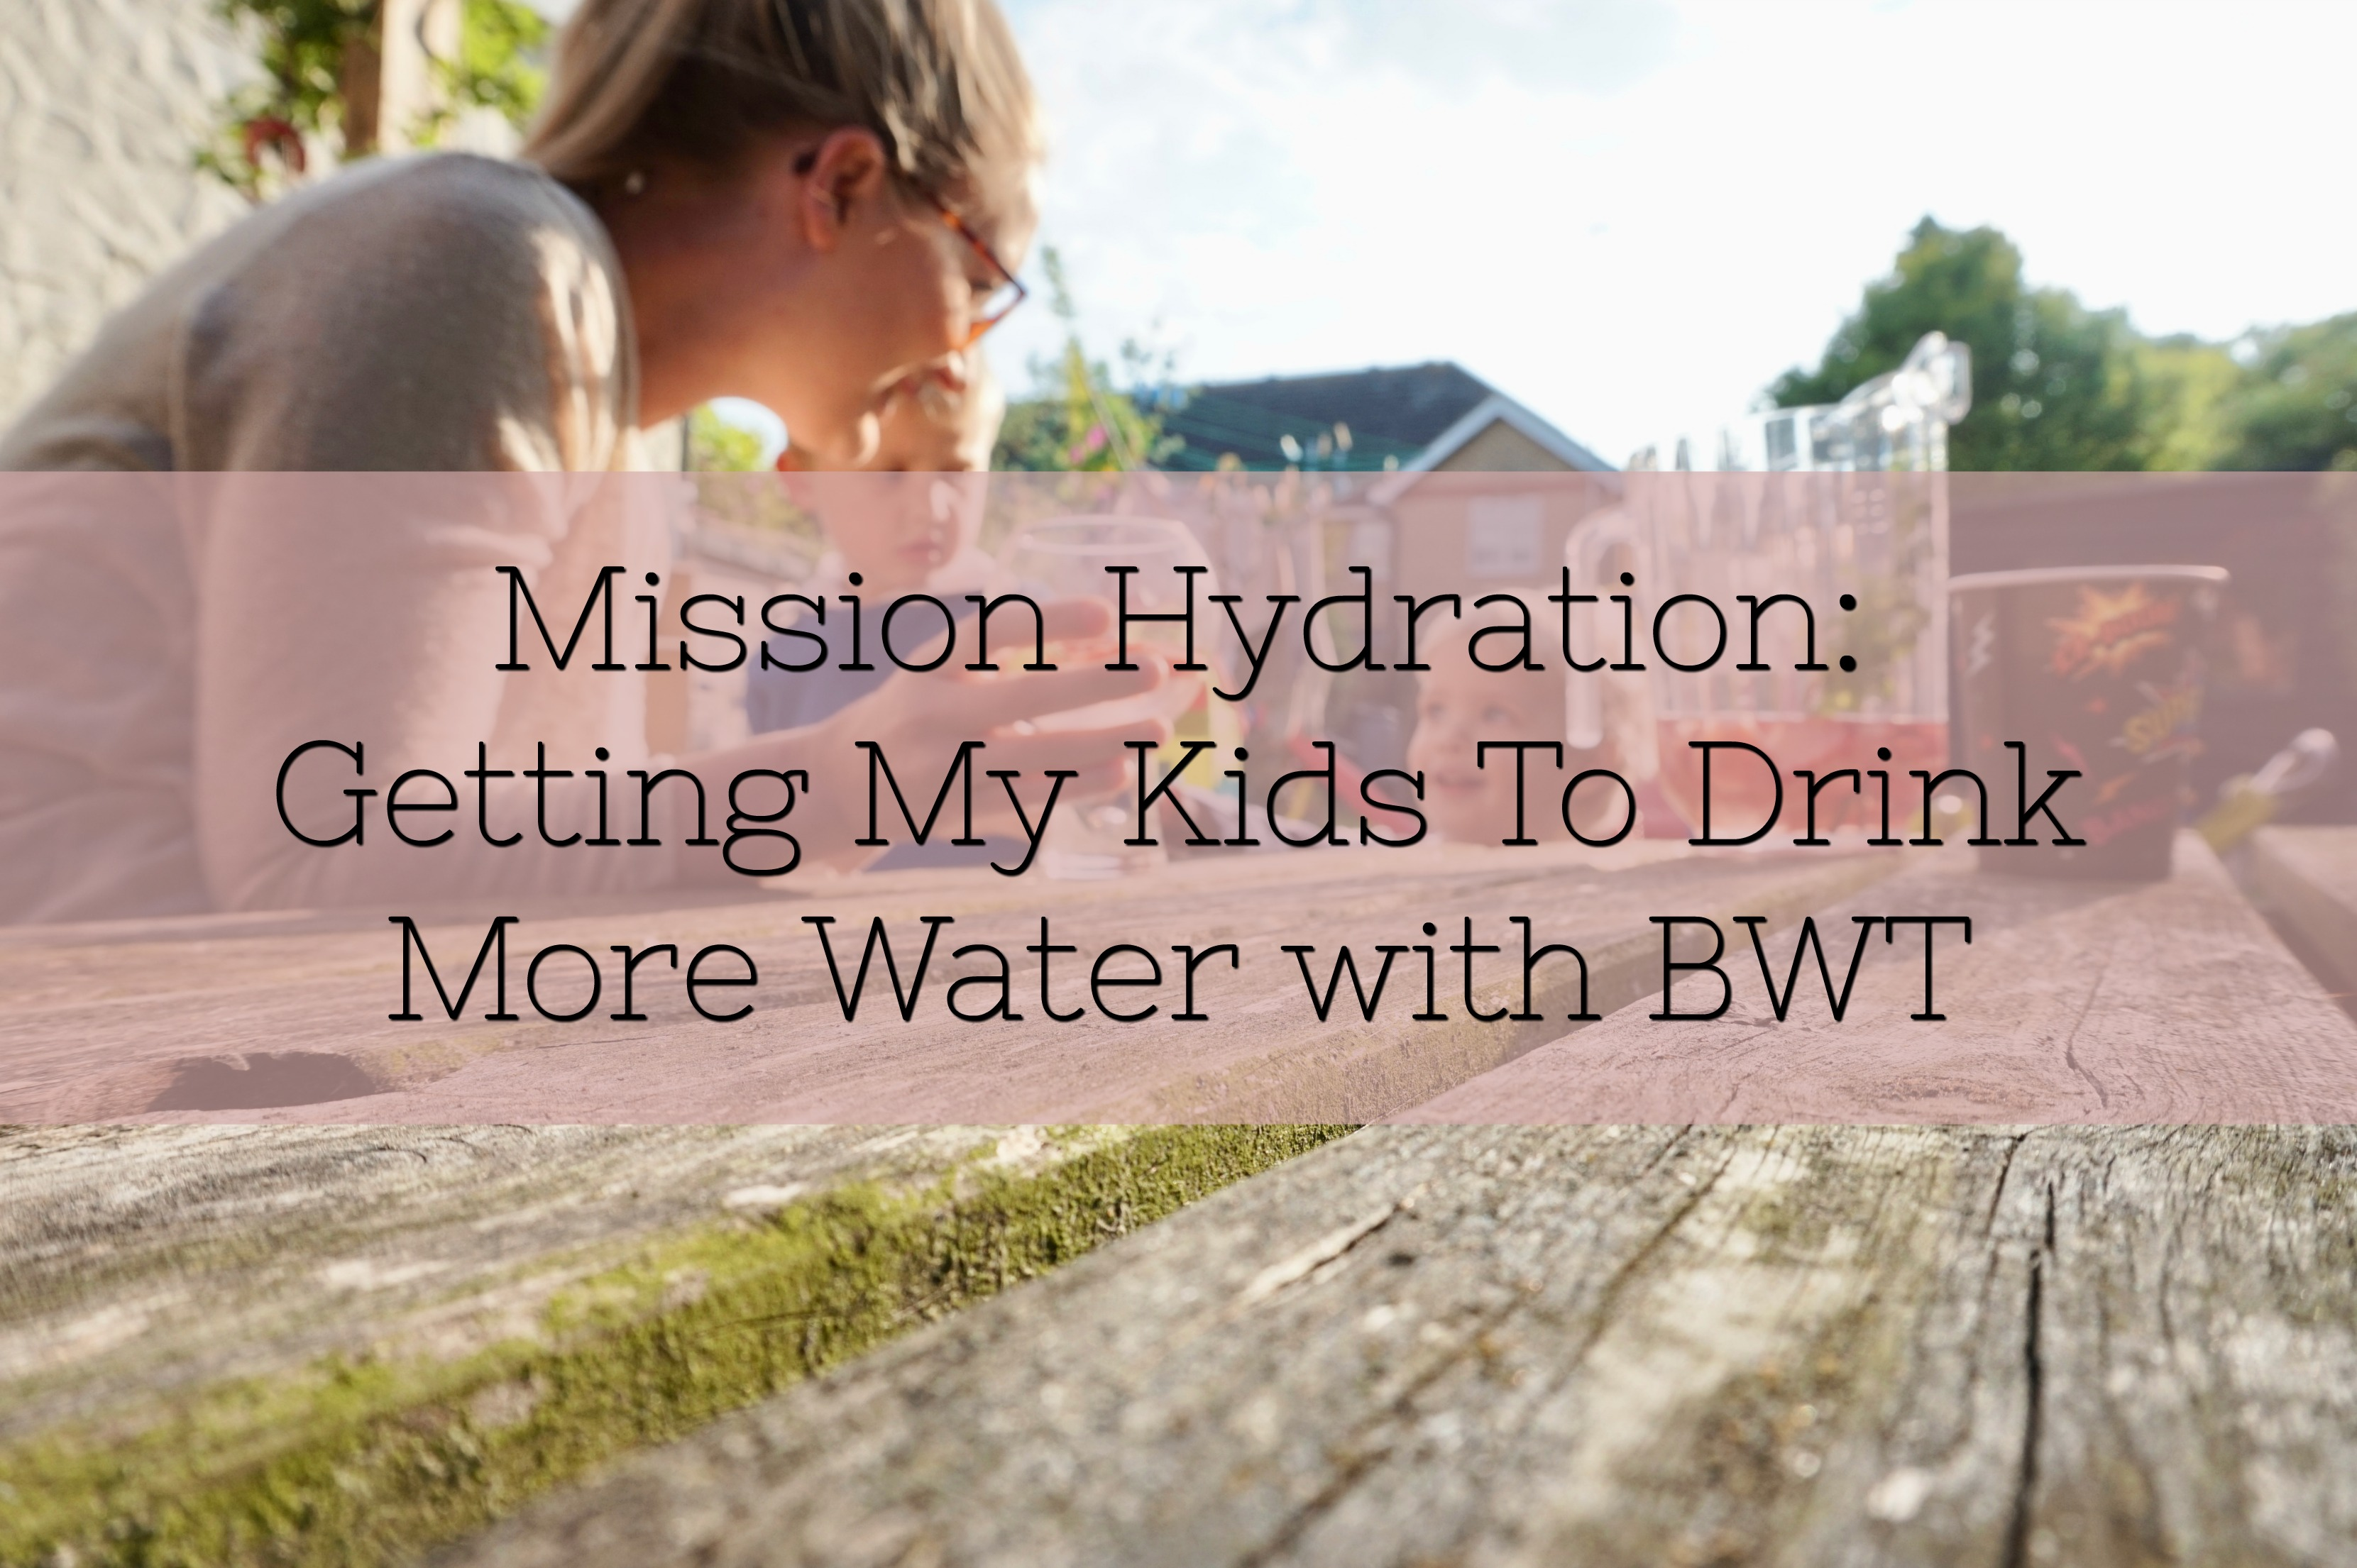 Mission Hydration: Getting My Kids To Drink More Water with BWT